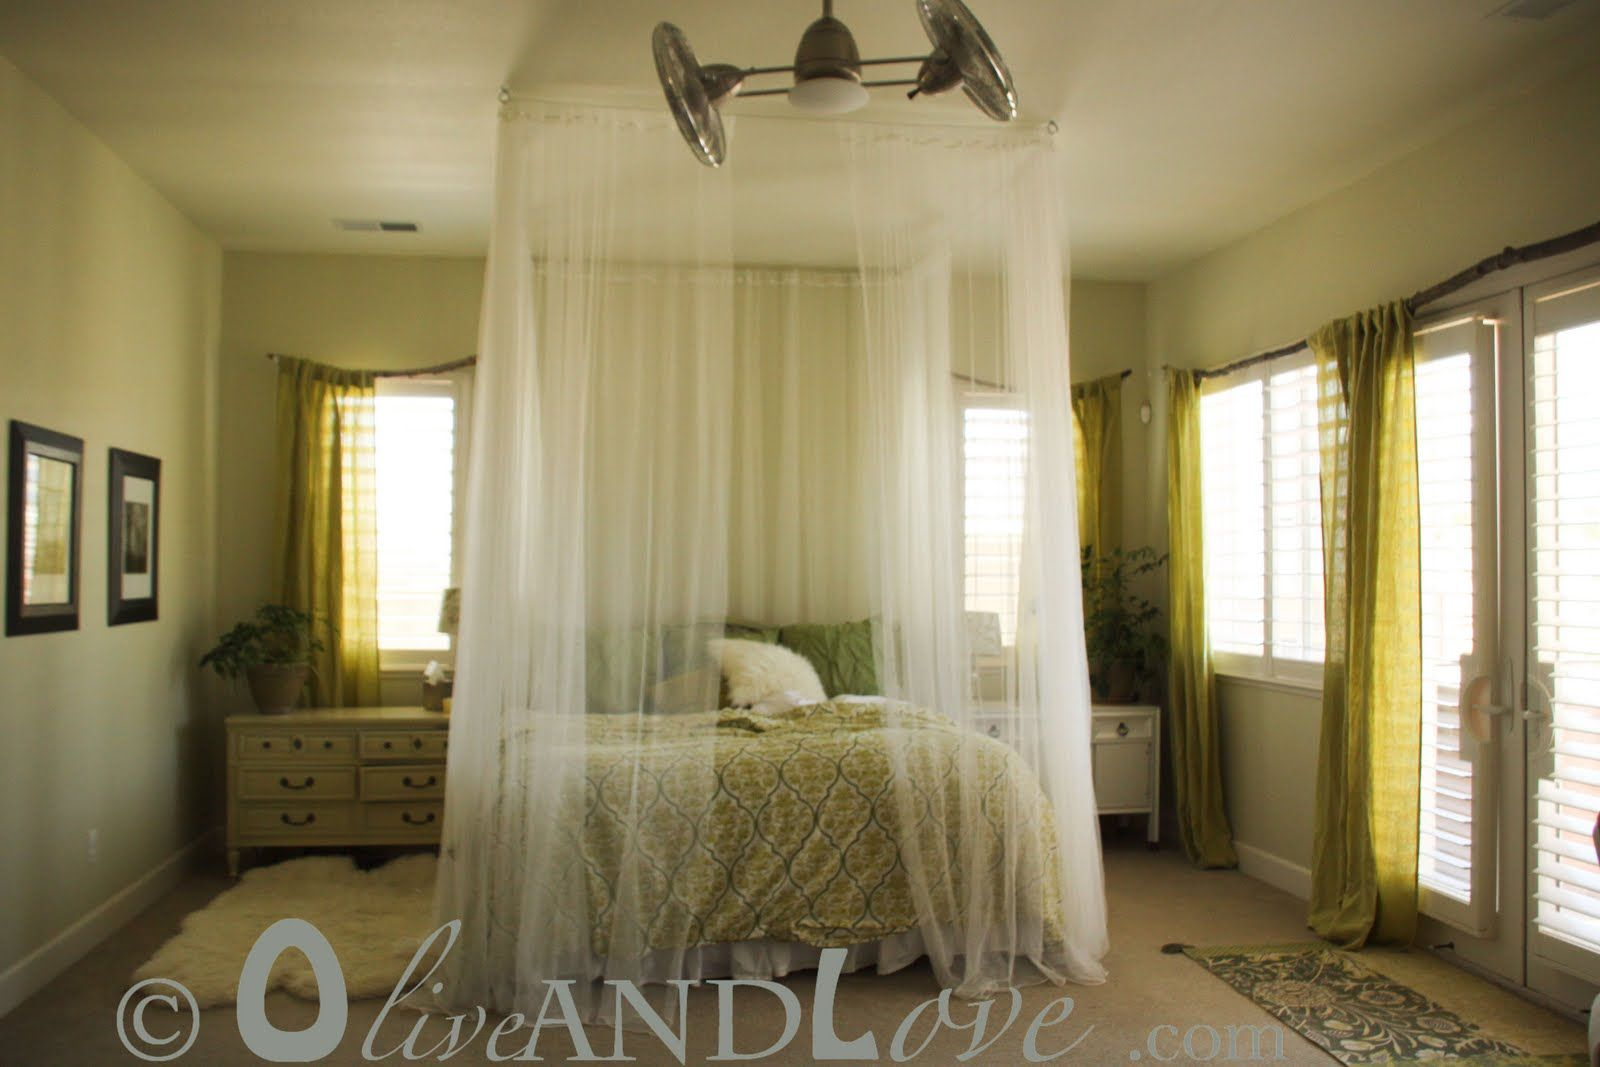 Tree Branch Curtain Rod Mosquito Netting Around Bed